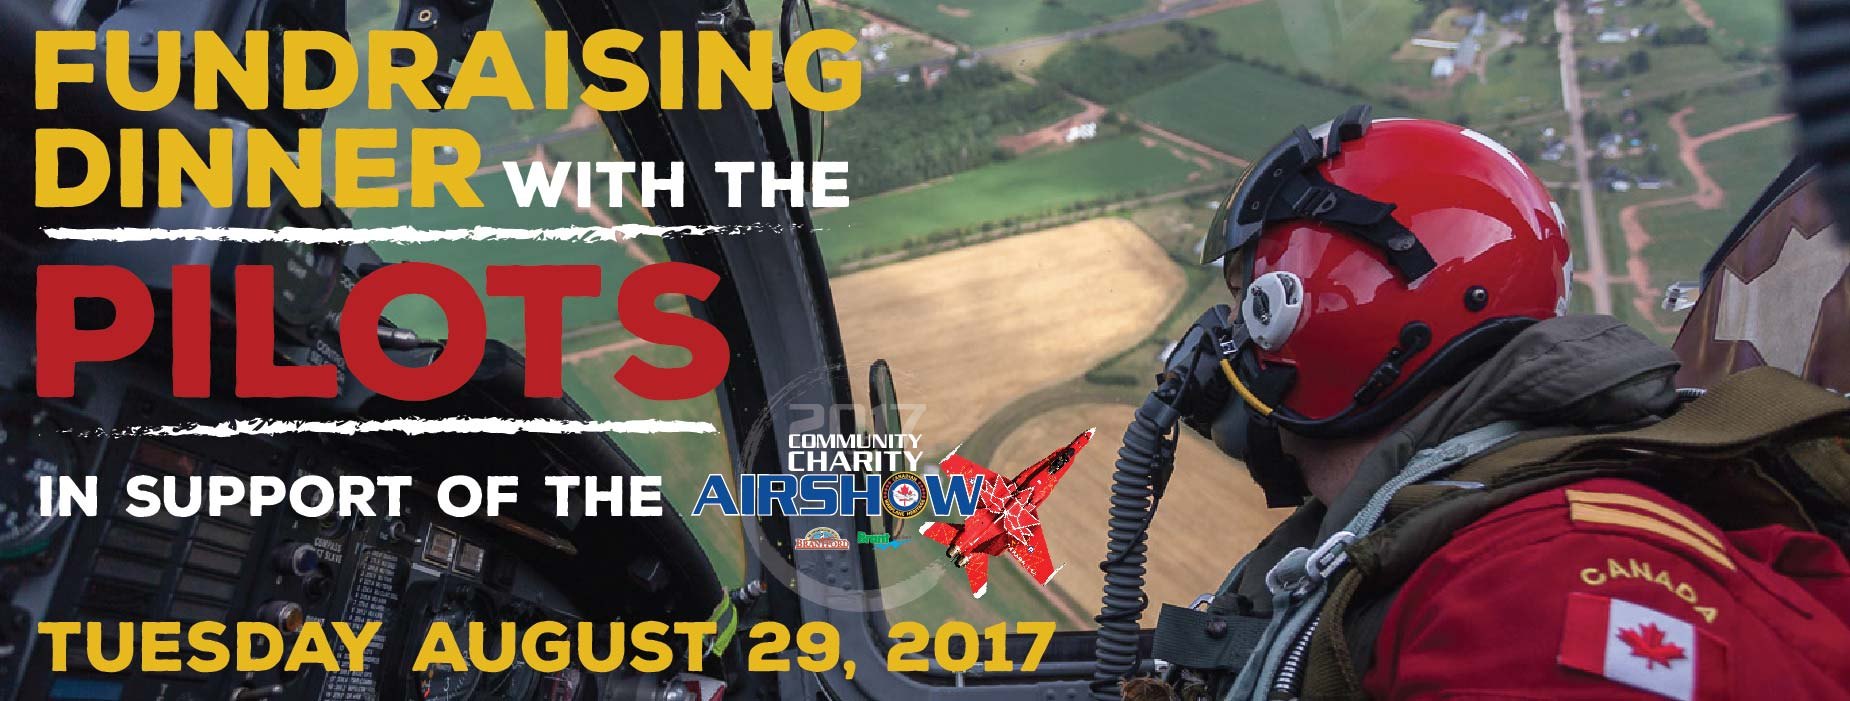 Banner Image for the Fundraising Dinner with the Pilots event